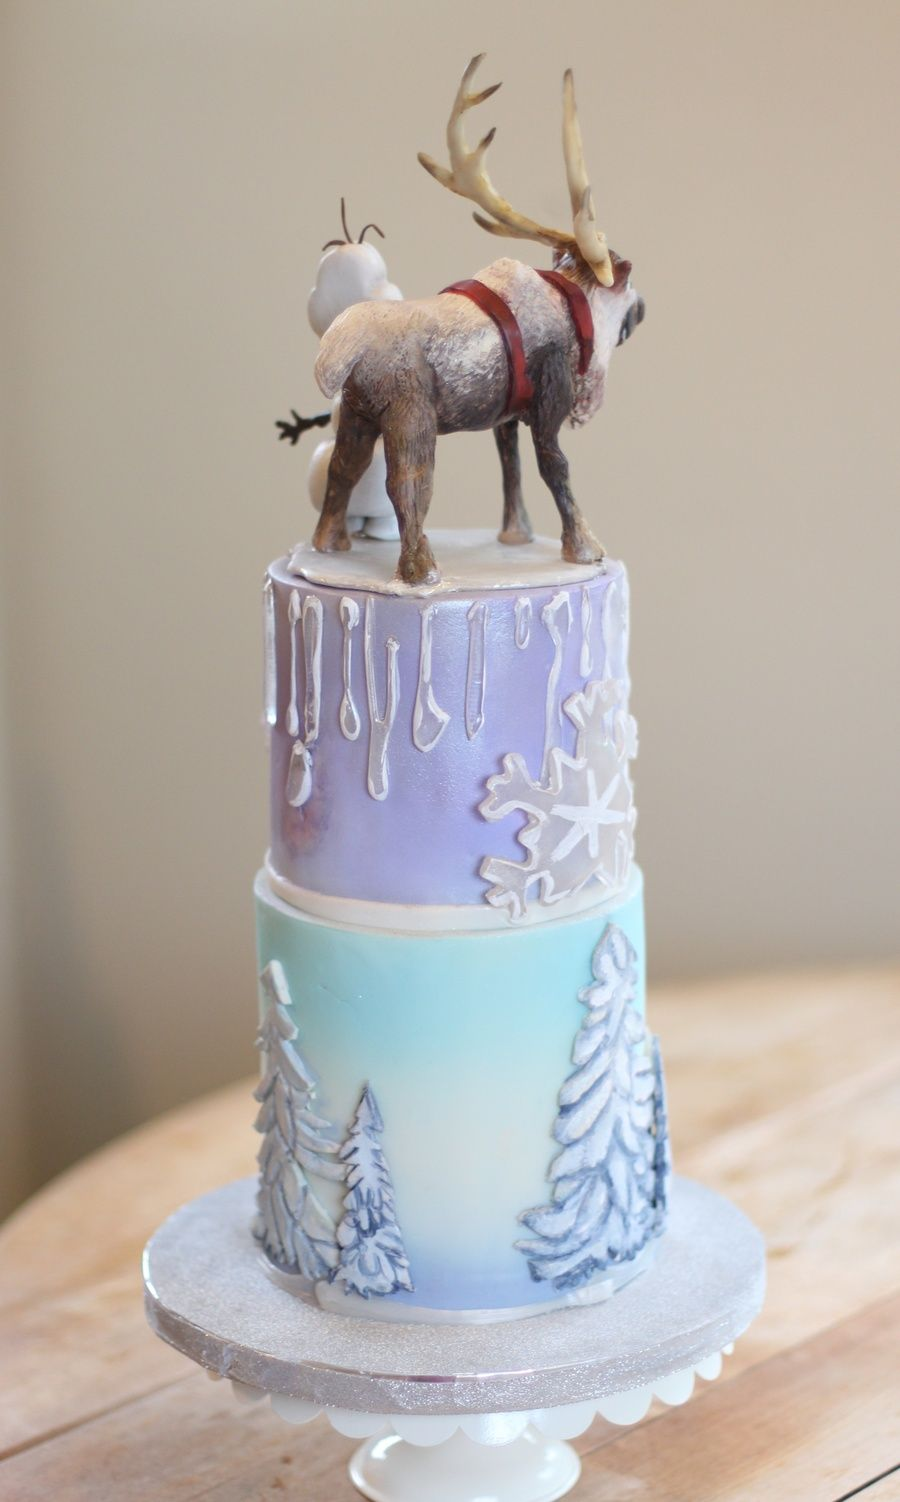 Disney Frozen Cake Modeling Chocolate Characters On Top ...